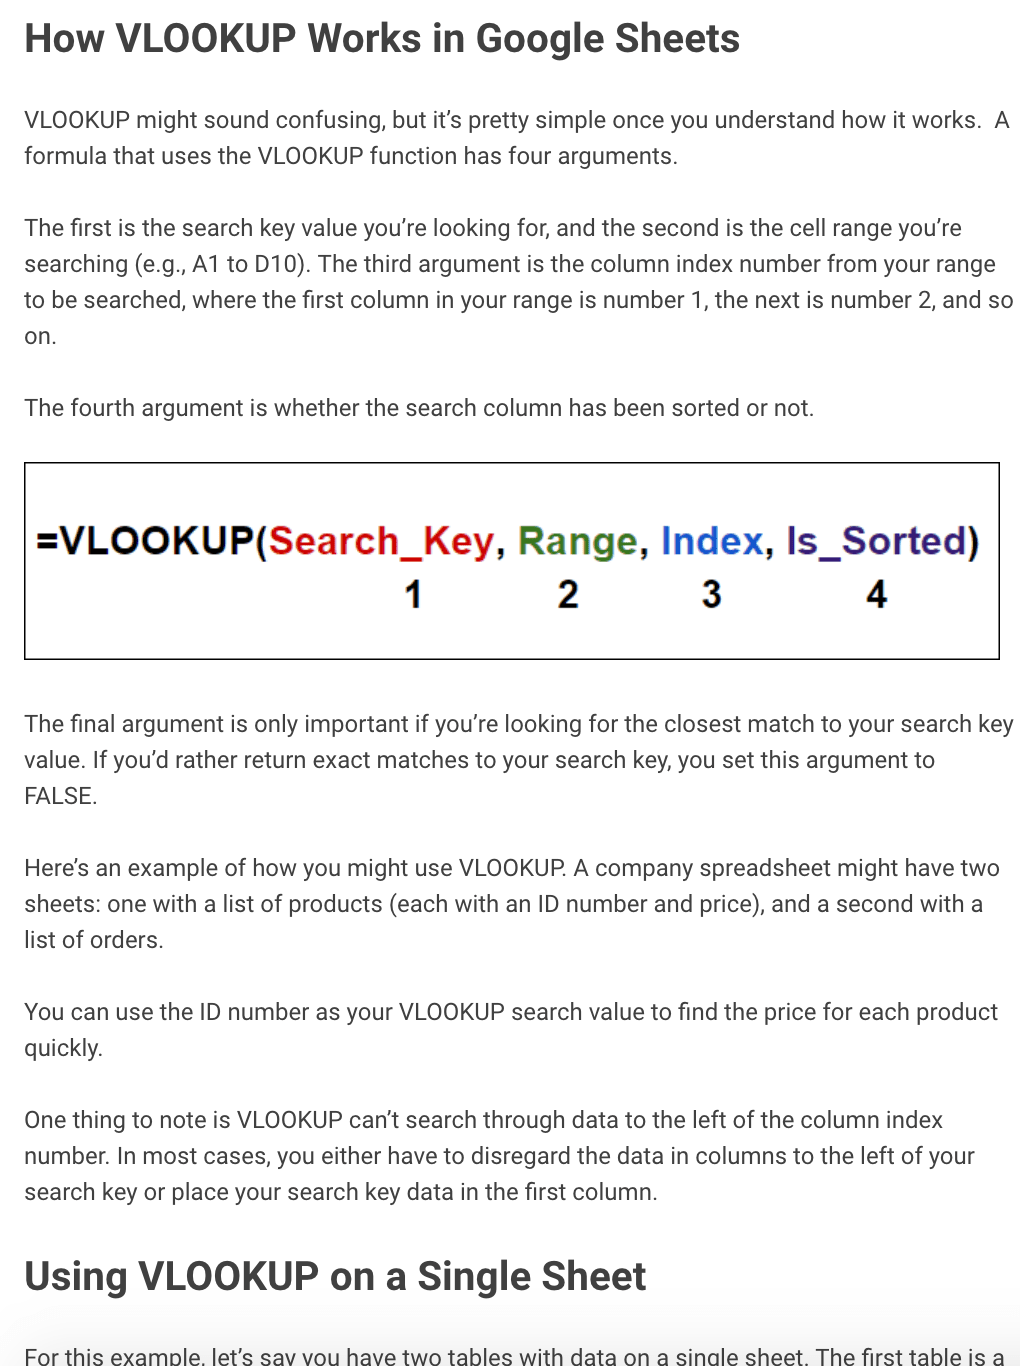 Google Sheets 'How VLookups Work' Guide